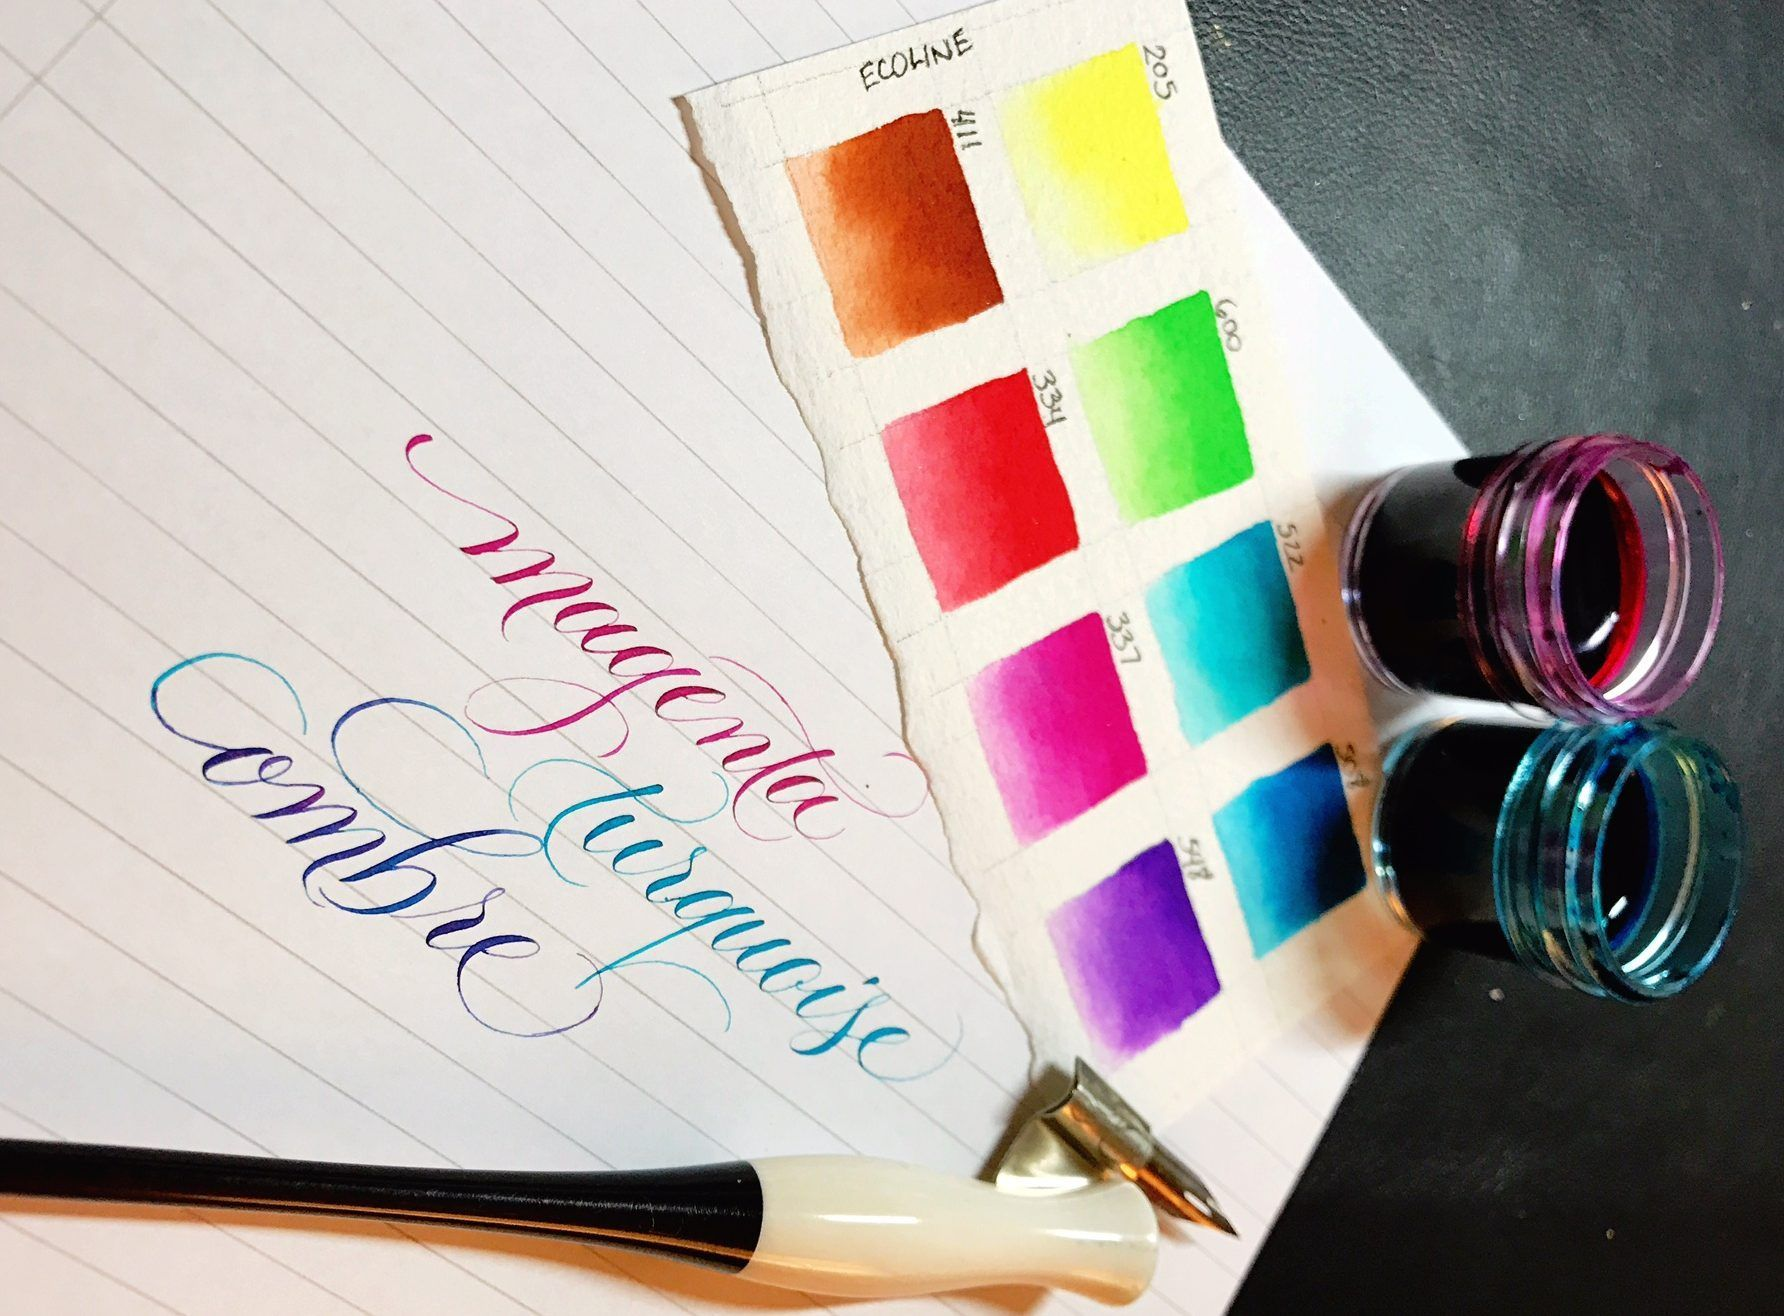 Review Of The Ecoline Liquid Watercolor By Kei Haniya Liquid Watercolor Watercolor Calligraphy